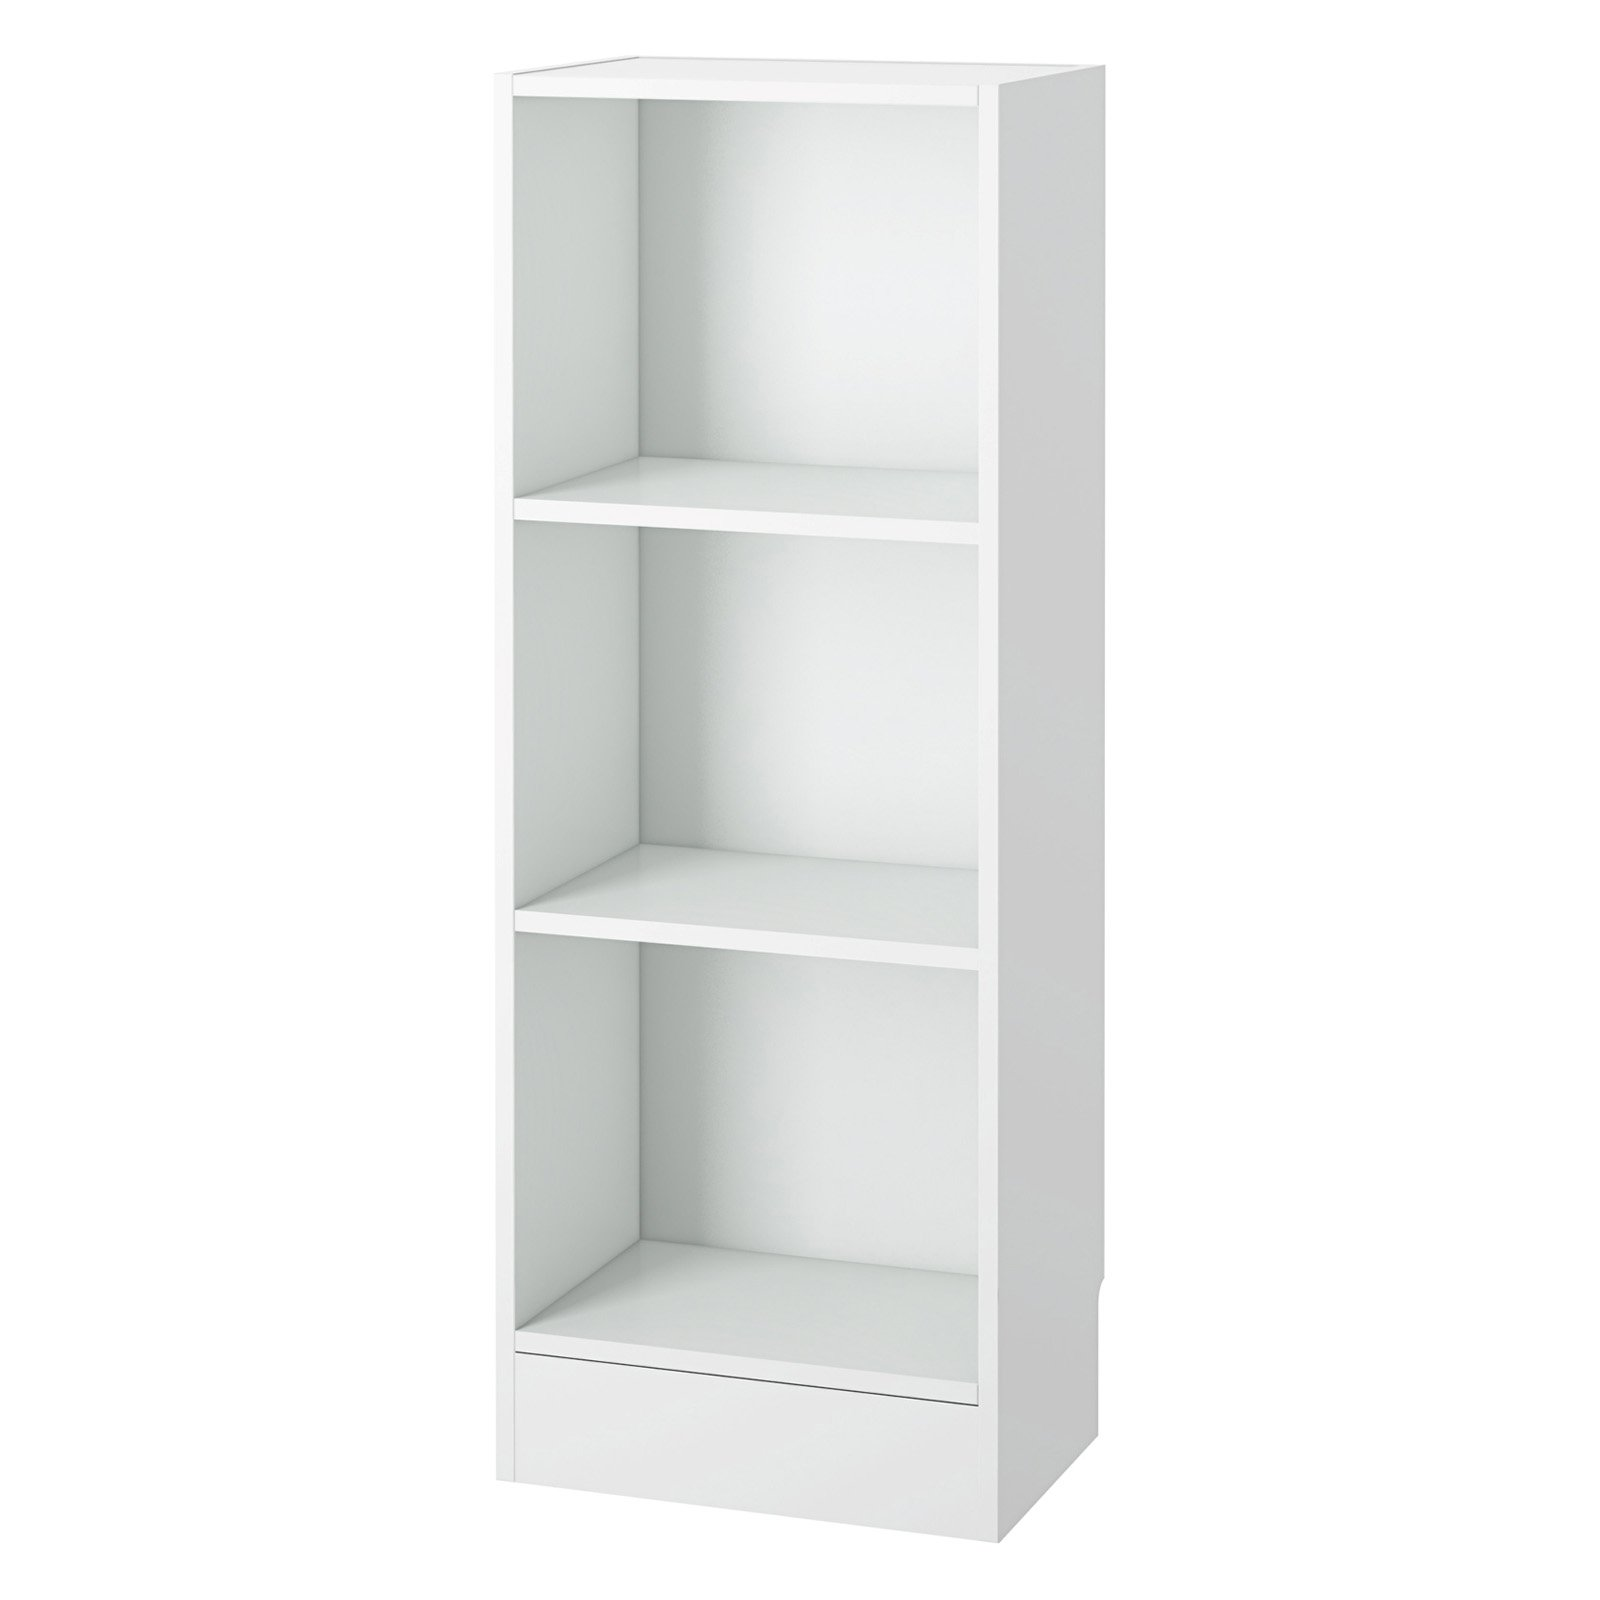 Preferred Element Short Narrow 3-Shelf Bookcase - Walmart.com KJ61